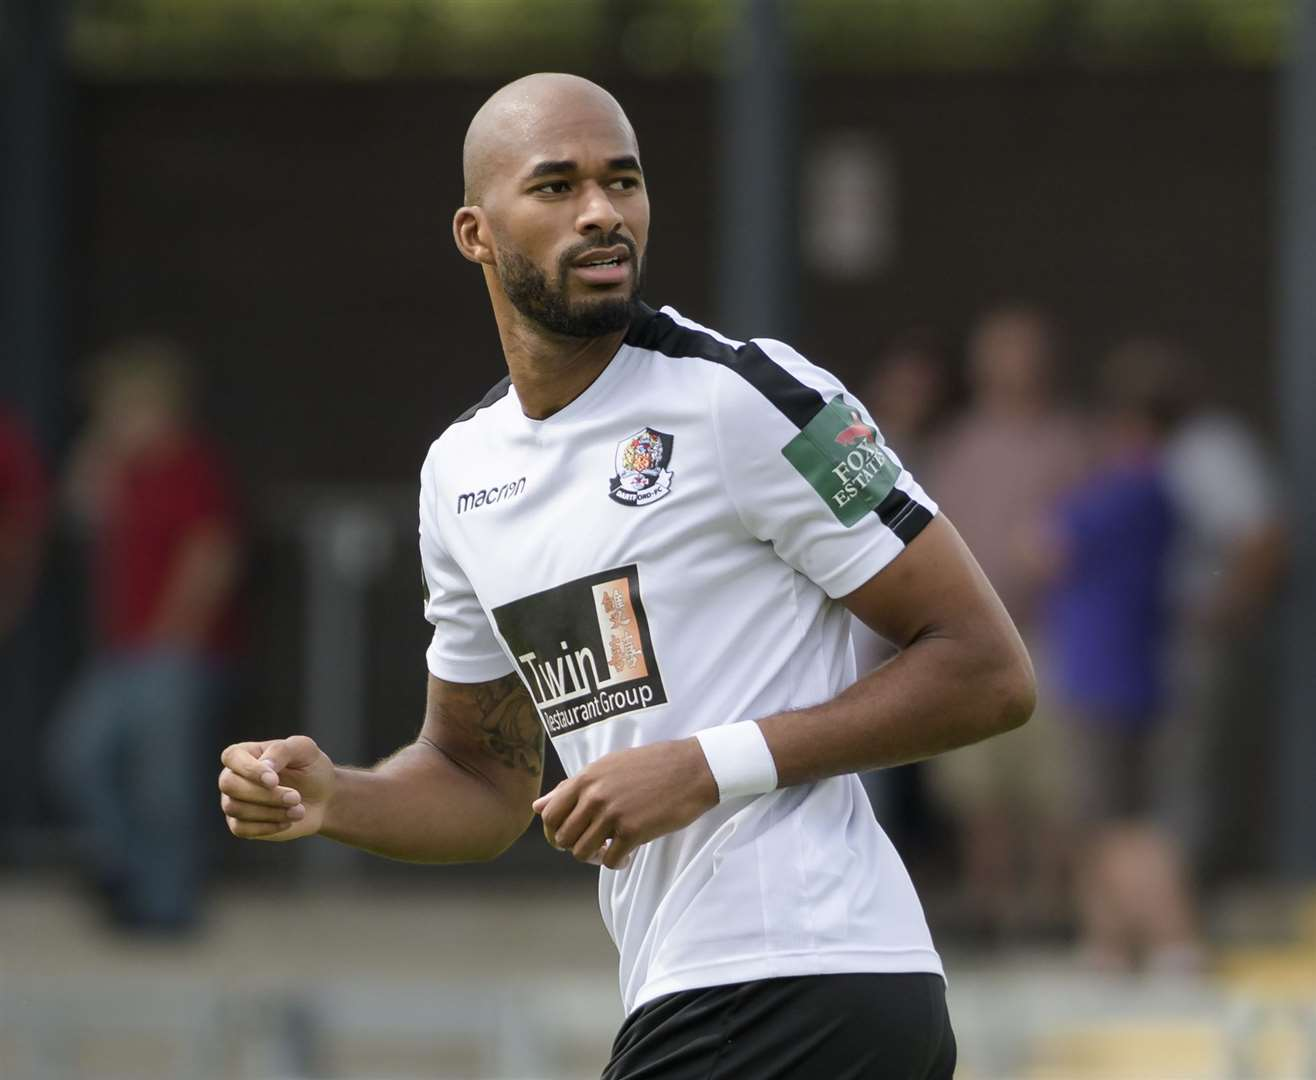 Delano Sam-Yorke joined Dartford after leaving Maidstone Picture: Andy Payton